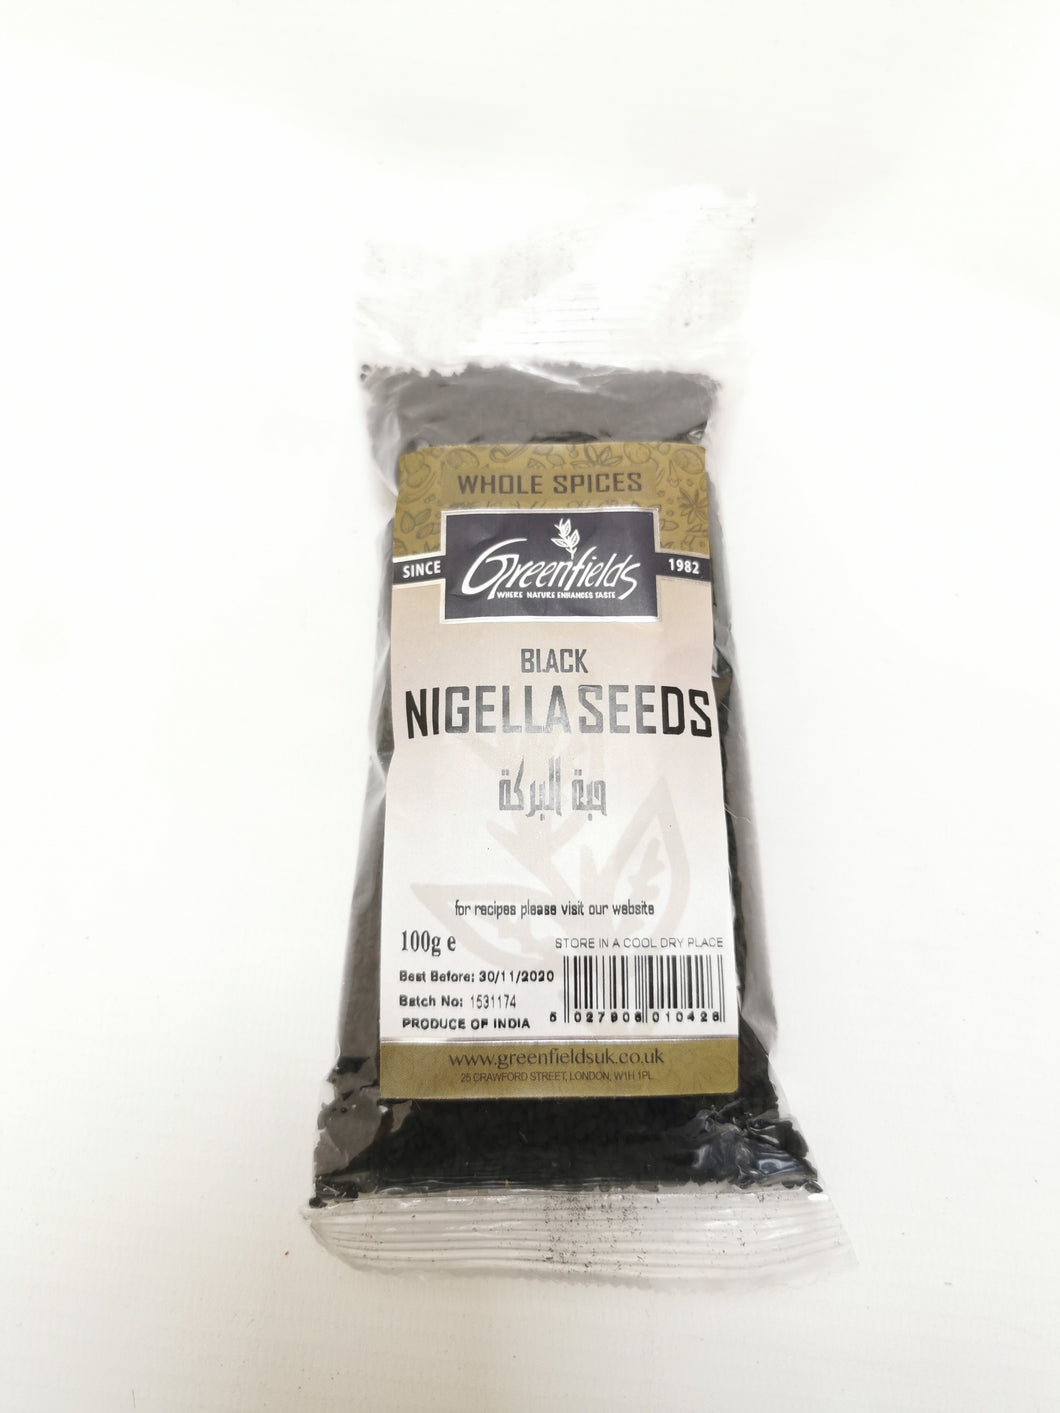 Greenfields Black Nigella Seeds